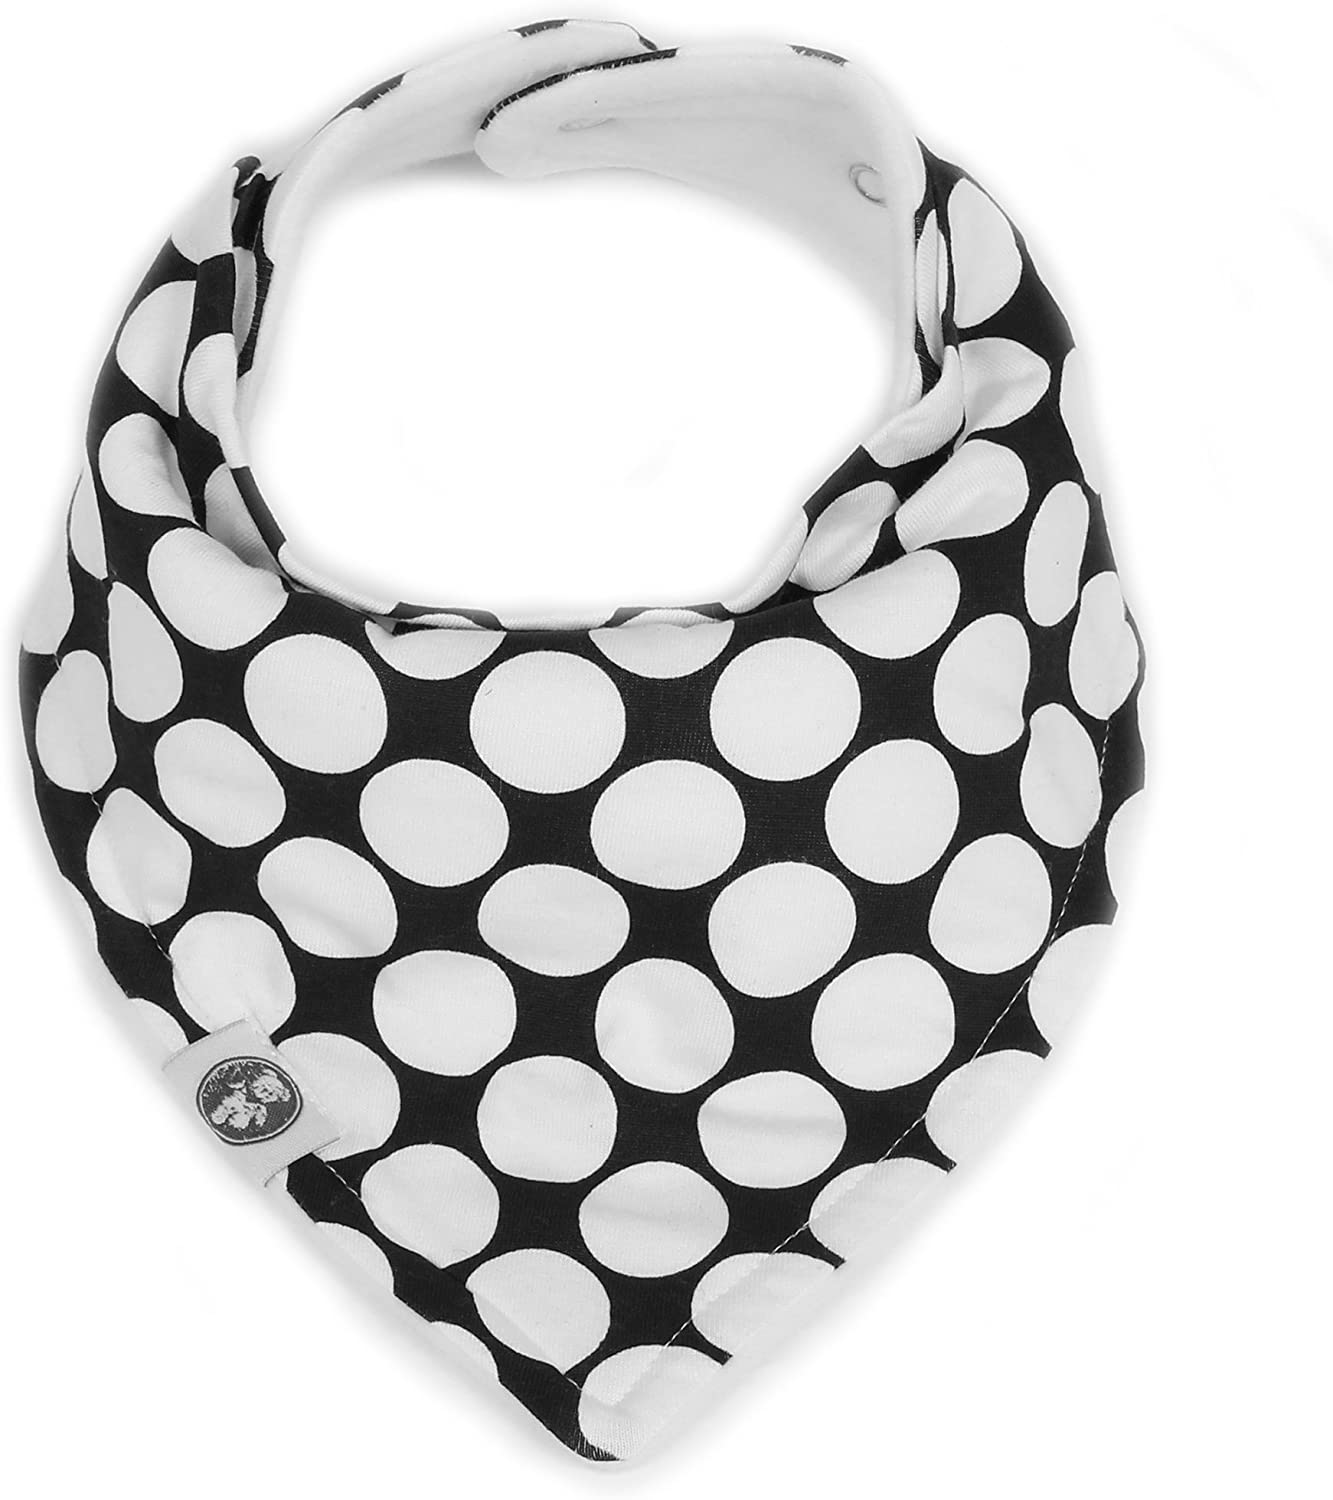 "Baby Bandana Drool Bibs for Girls 6 Pack /""Monochrome Set/"" by Mumby"